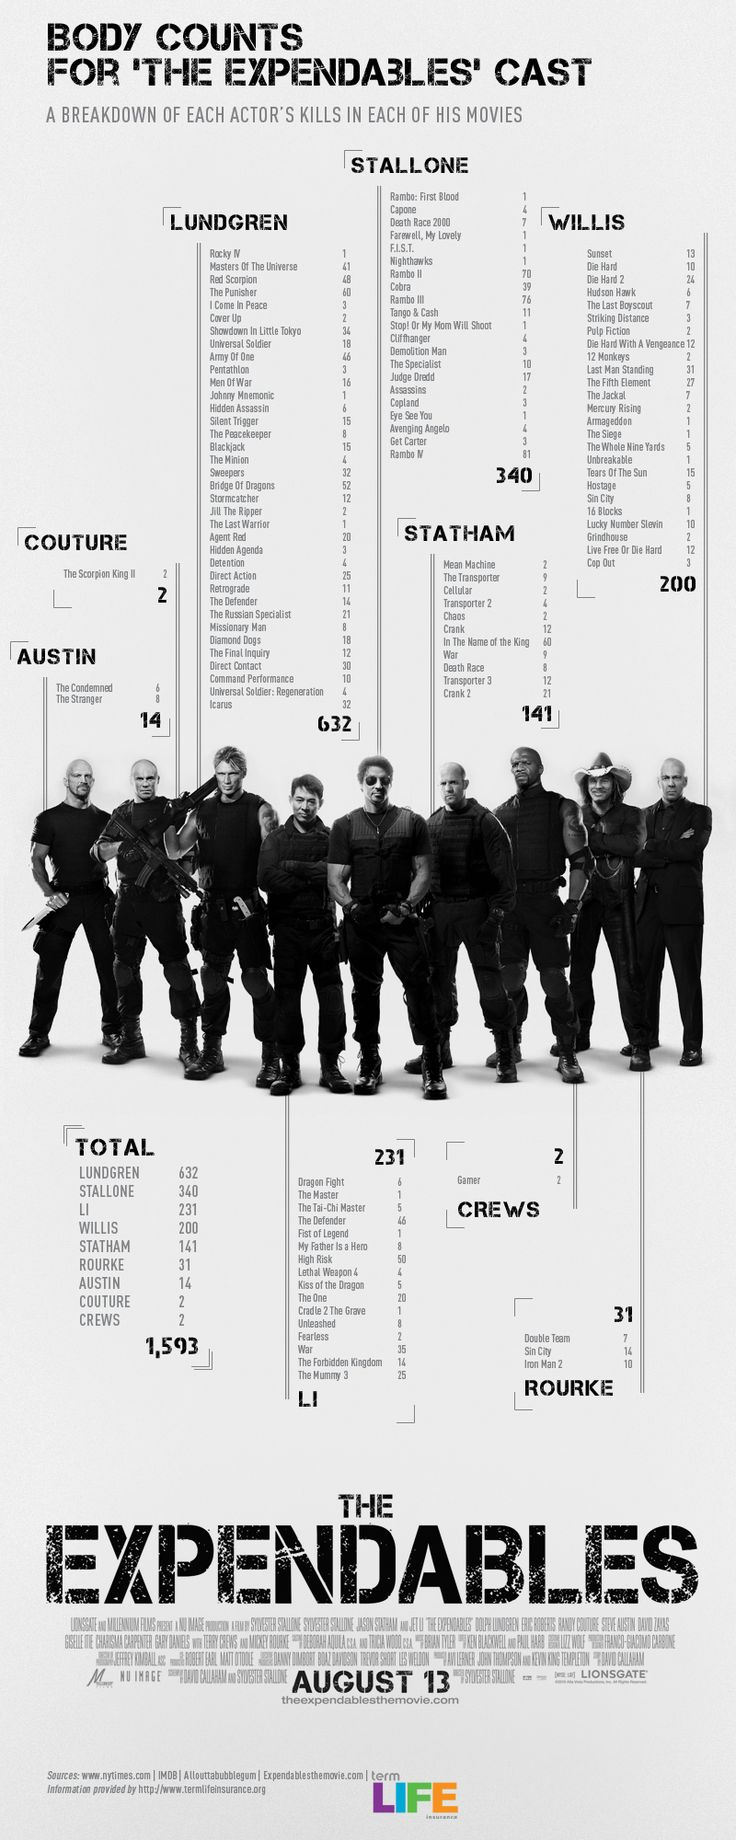 Kill Counts of the cast of the Expendables / via christine yen / what, lundgren??